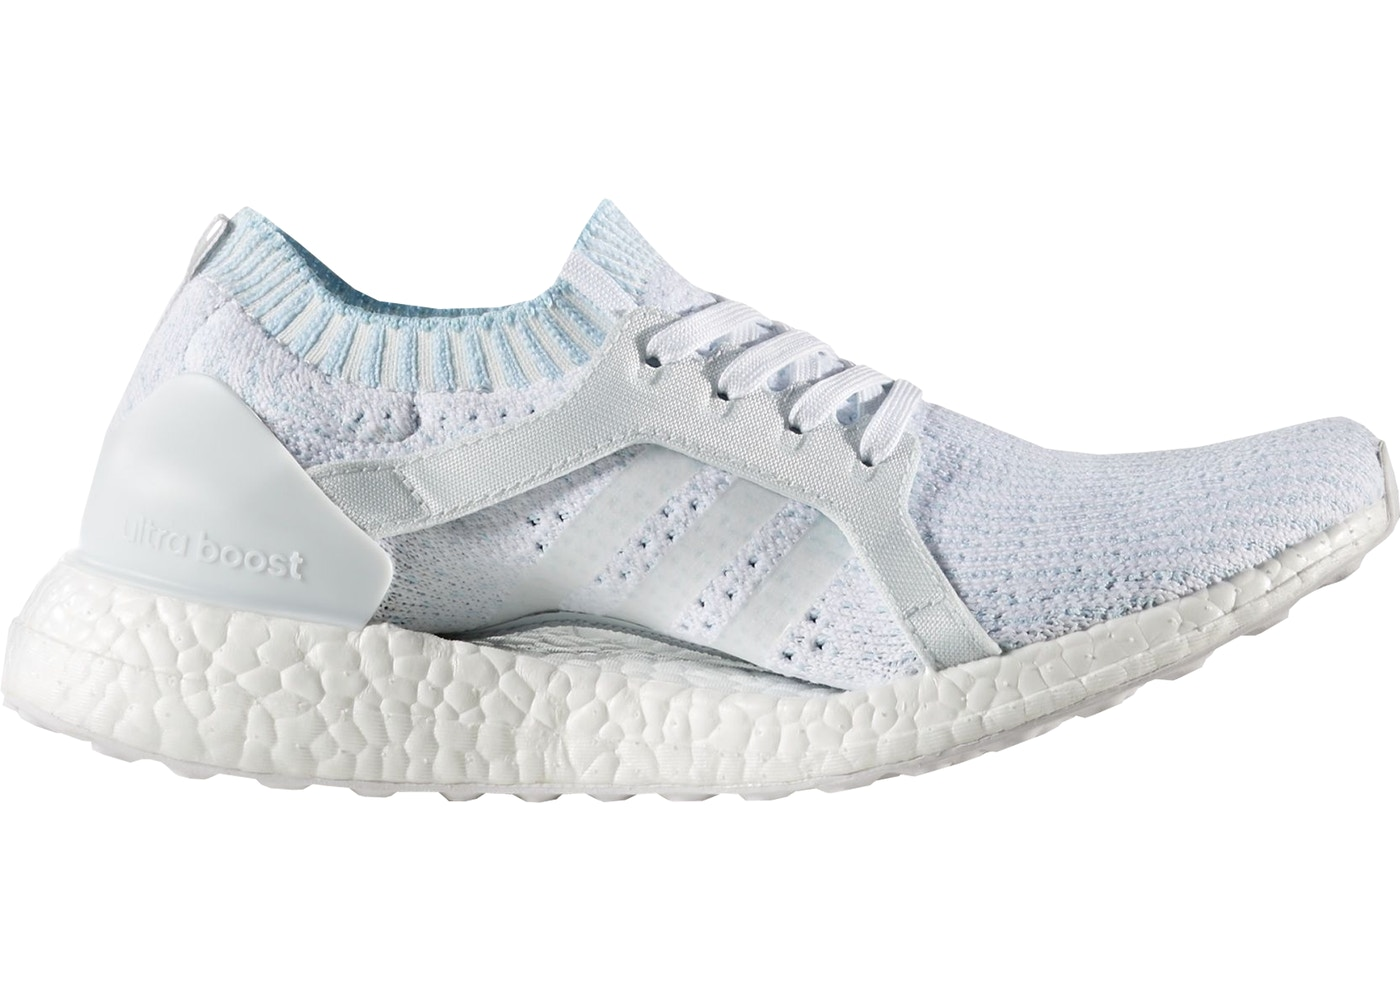 651d222519fbf adidas Ultra Boost X Parley Coral Bleaching (W) - BY2707